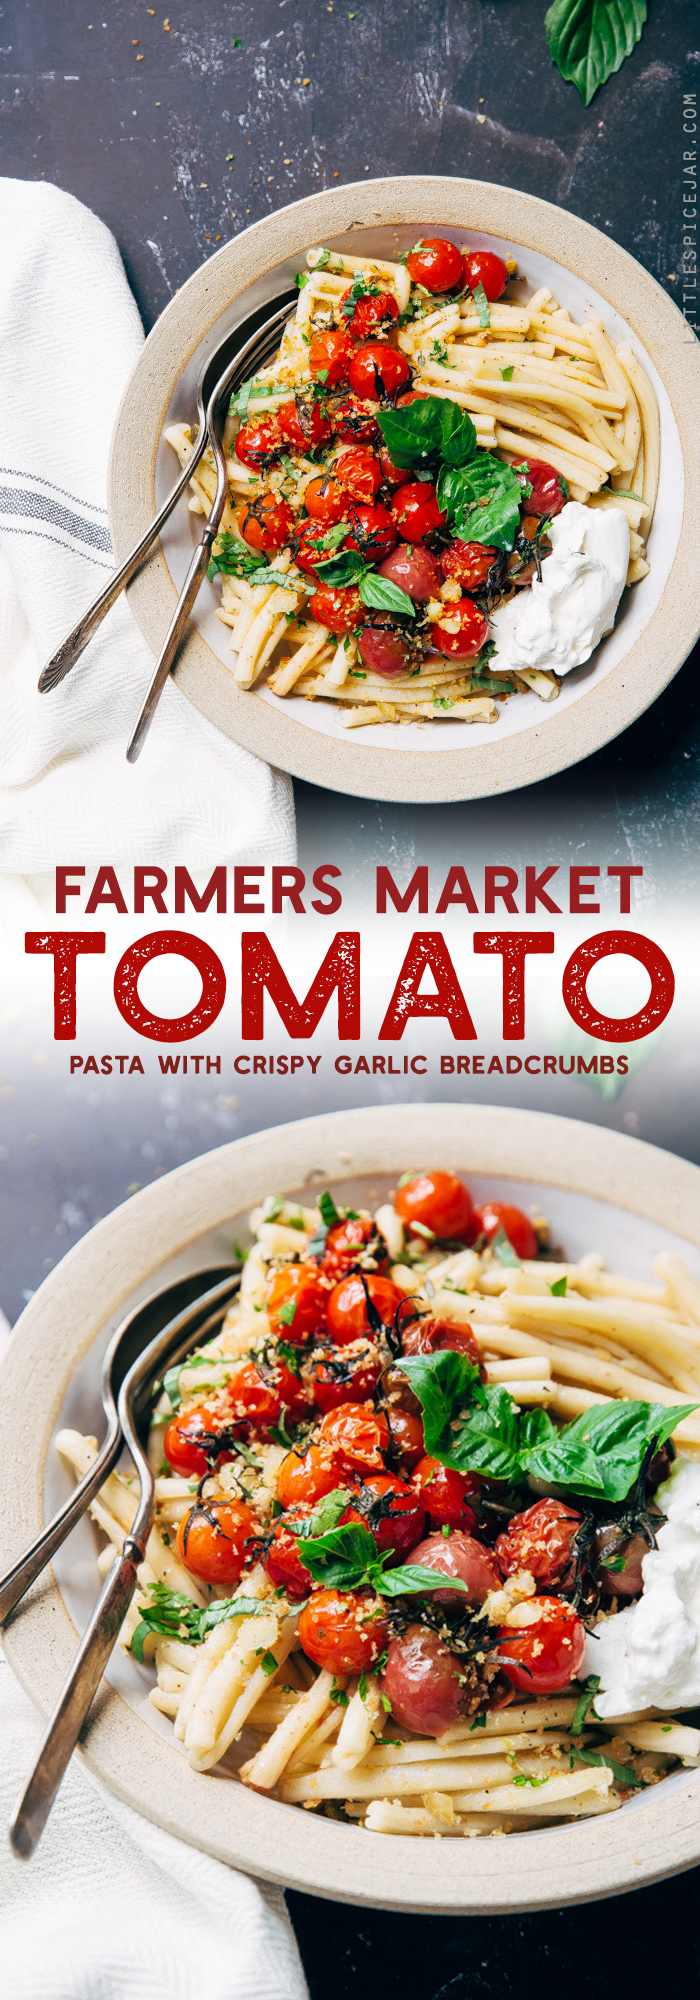 Farmer's Market Roasted Tomato Pasta with Garlic Breadcrumbs - use up all those delicious cherry tomatoes summer has to offer in this simple pasta dish! #roastedtomatopasta #tomatobasilpasta #garlicbreadpasta | Littlespicejar.com